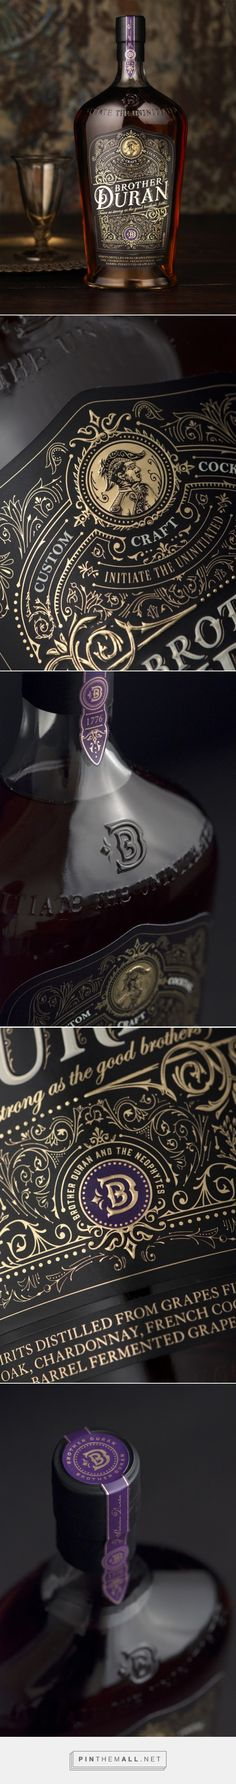 Brother Duran spirits packaging designed by CF NAPA Brand Design​ - http://www.packagingoftheworld.com/2015/11/brother-duran.html